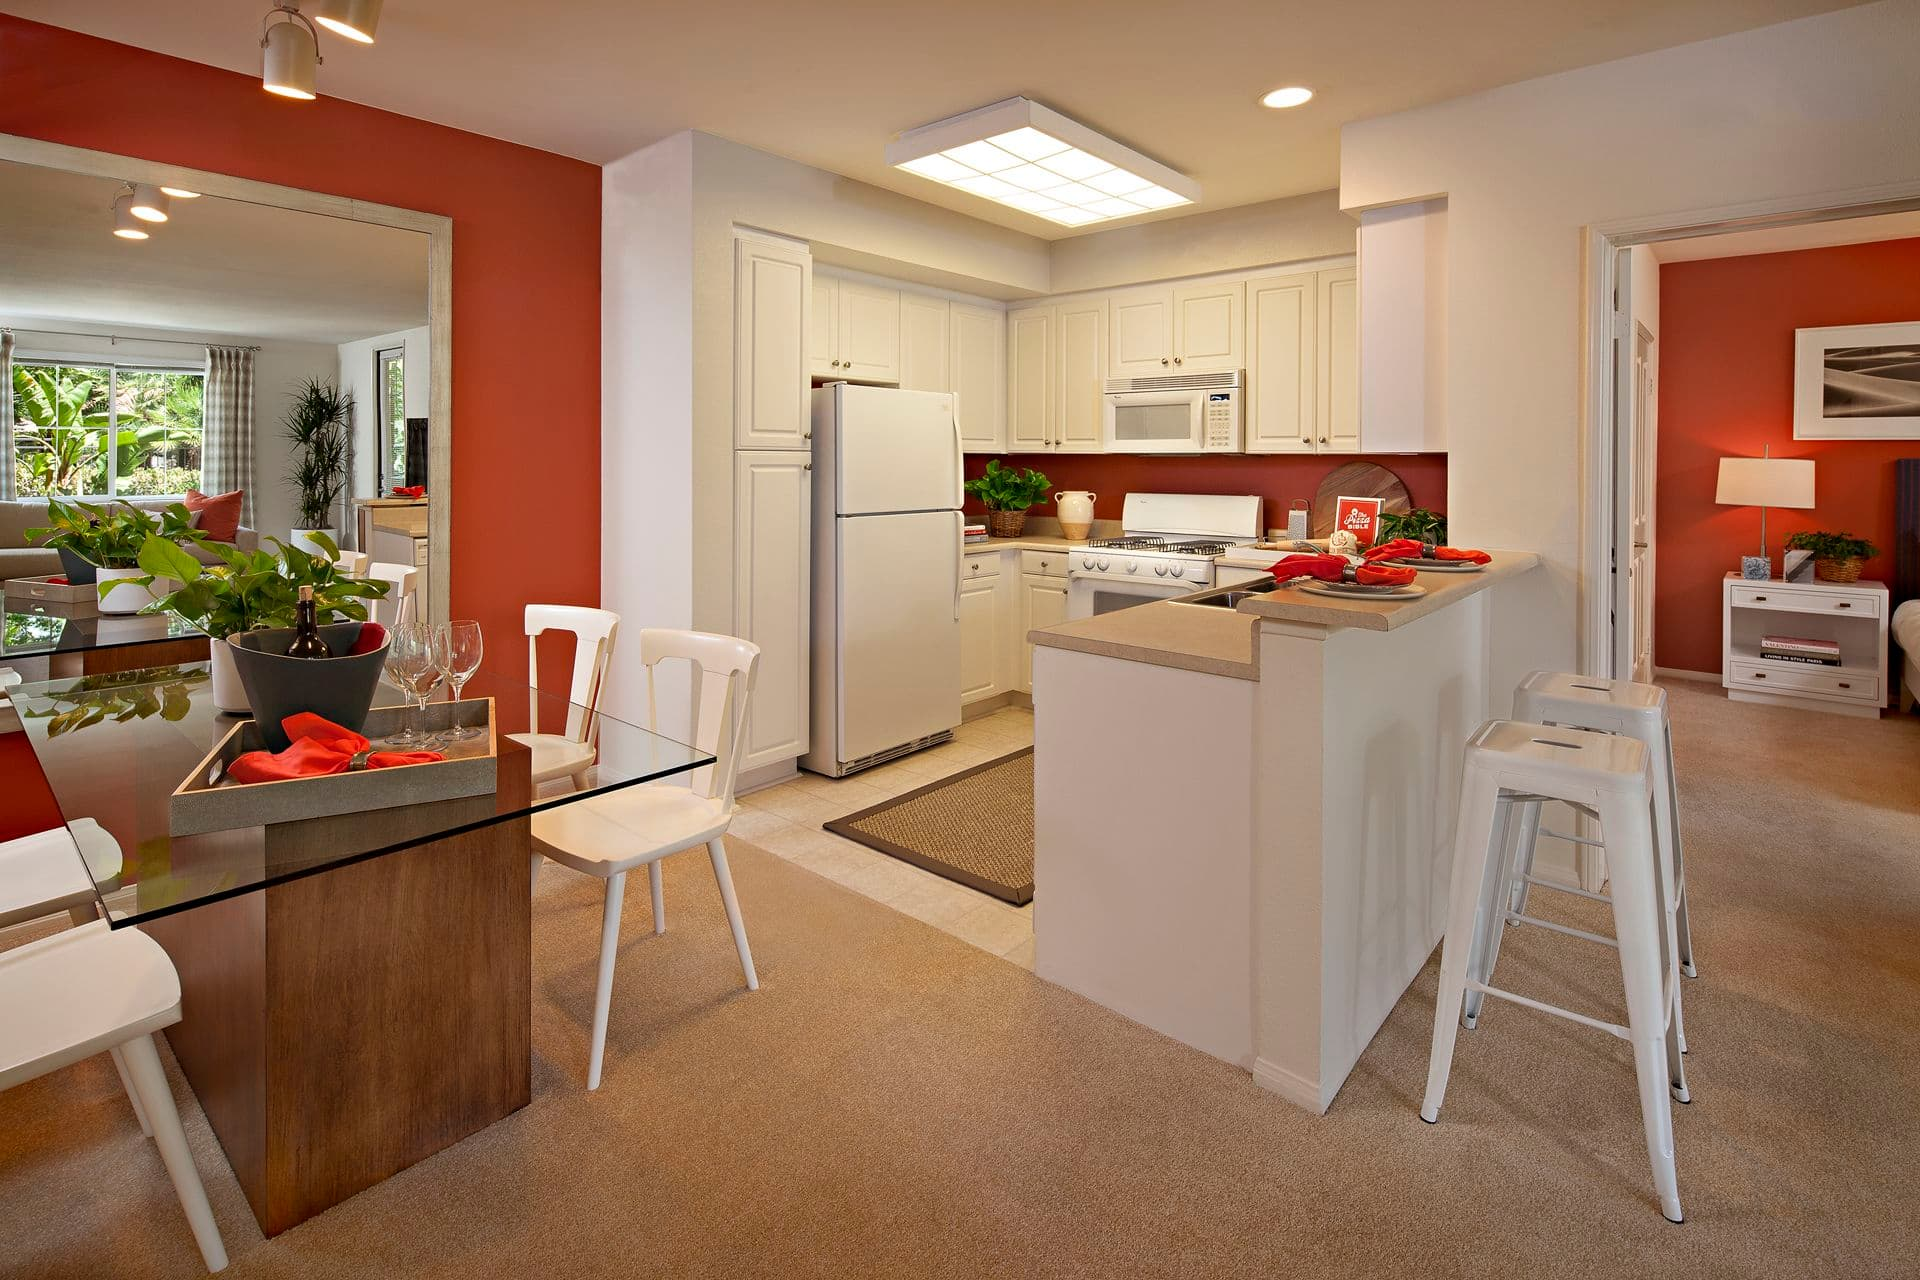 Interior view of kitchen and dining room at Serrano Apartment Homes in Irvine, CA.